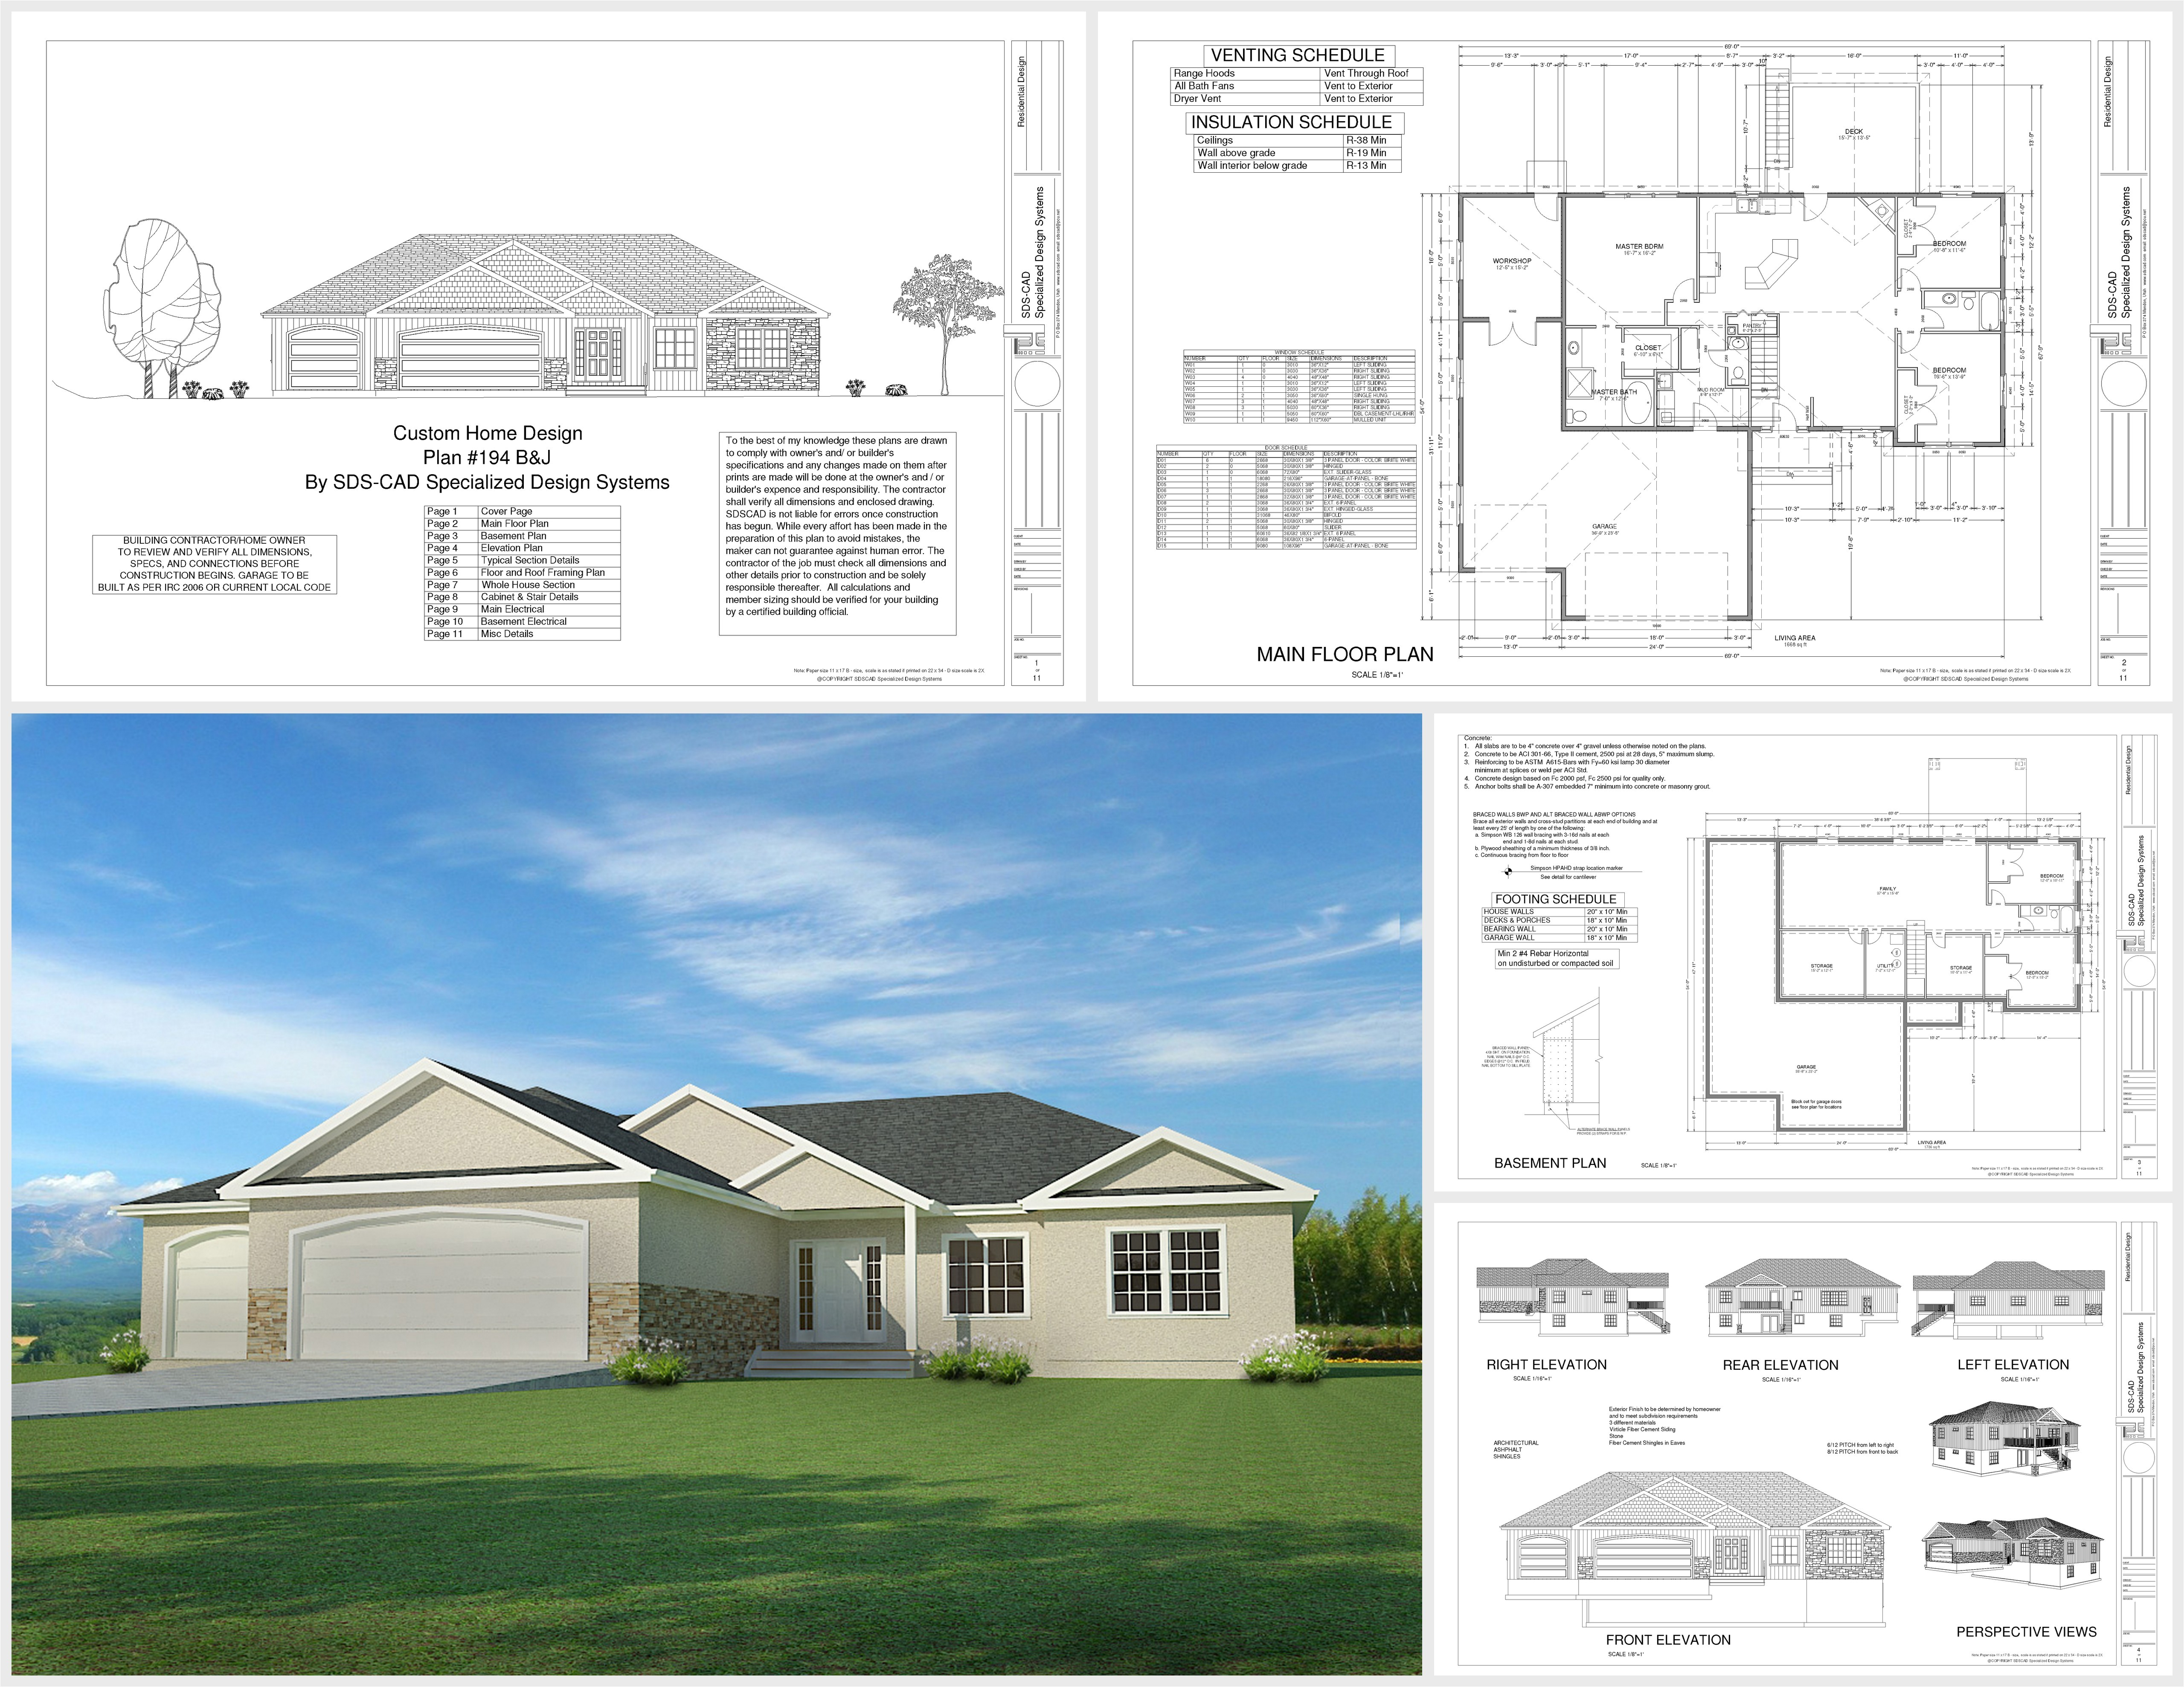 download this weeks free house plan h194 1668 sq ft 3 bdm 2 bath